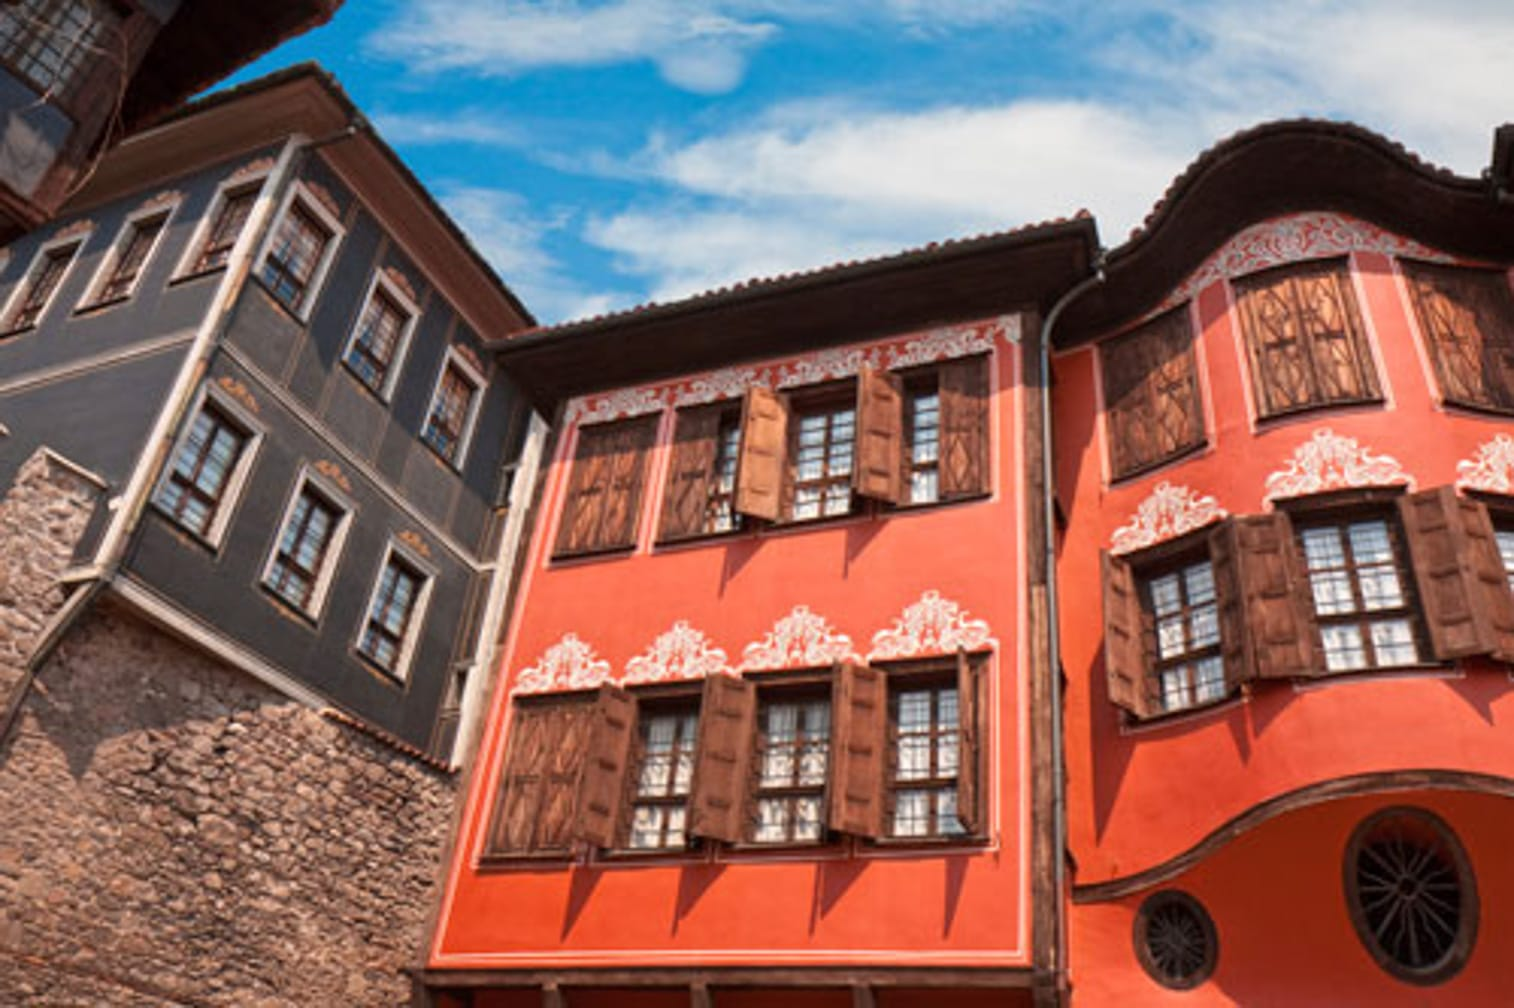 Red buildings on the Castles of Transylvania: Istanbul to Budapest aboard the Danube Express journey